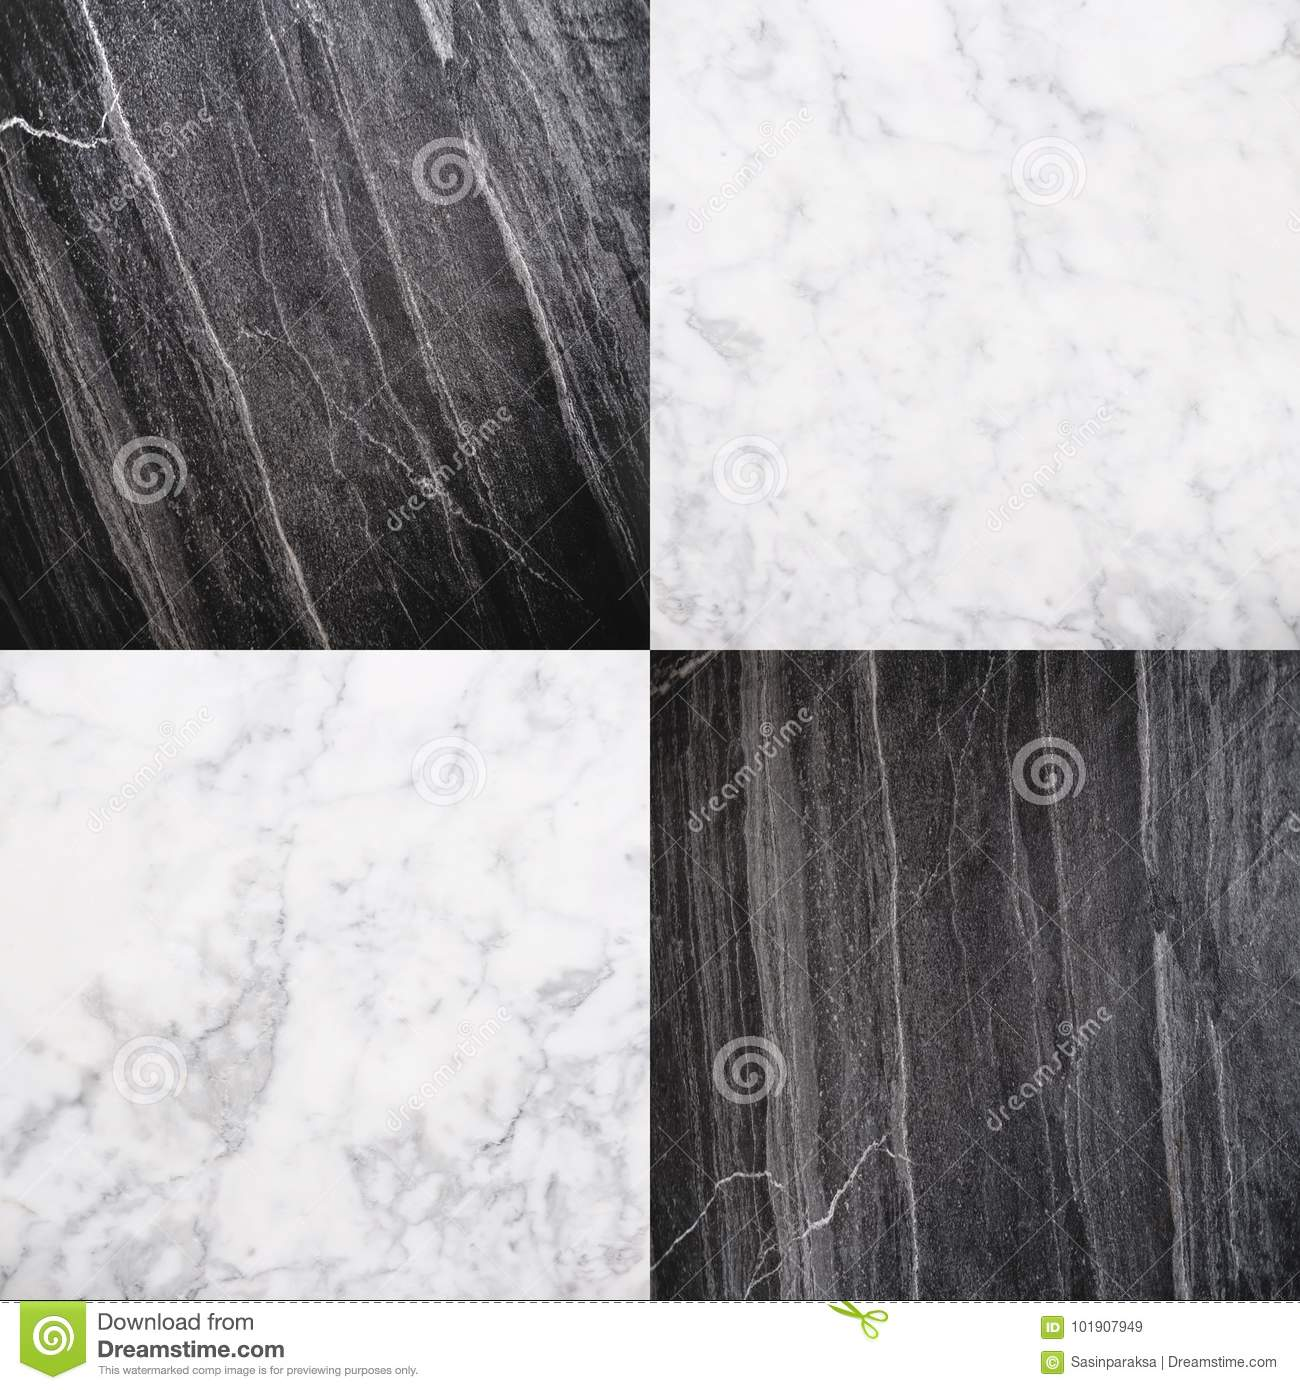 21 762 Marble Tile Seamless Texture Photos Free Royalty Free Stock Photos From Dreamstime